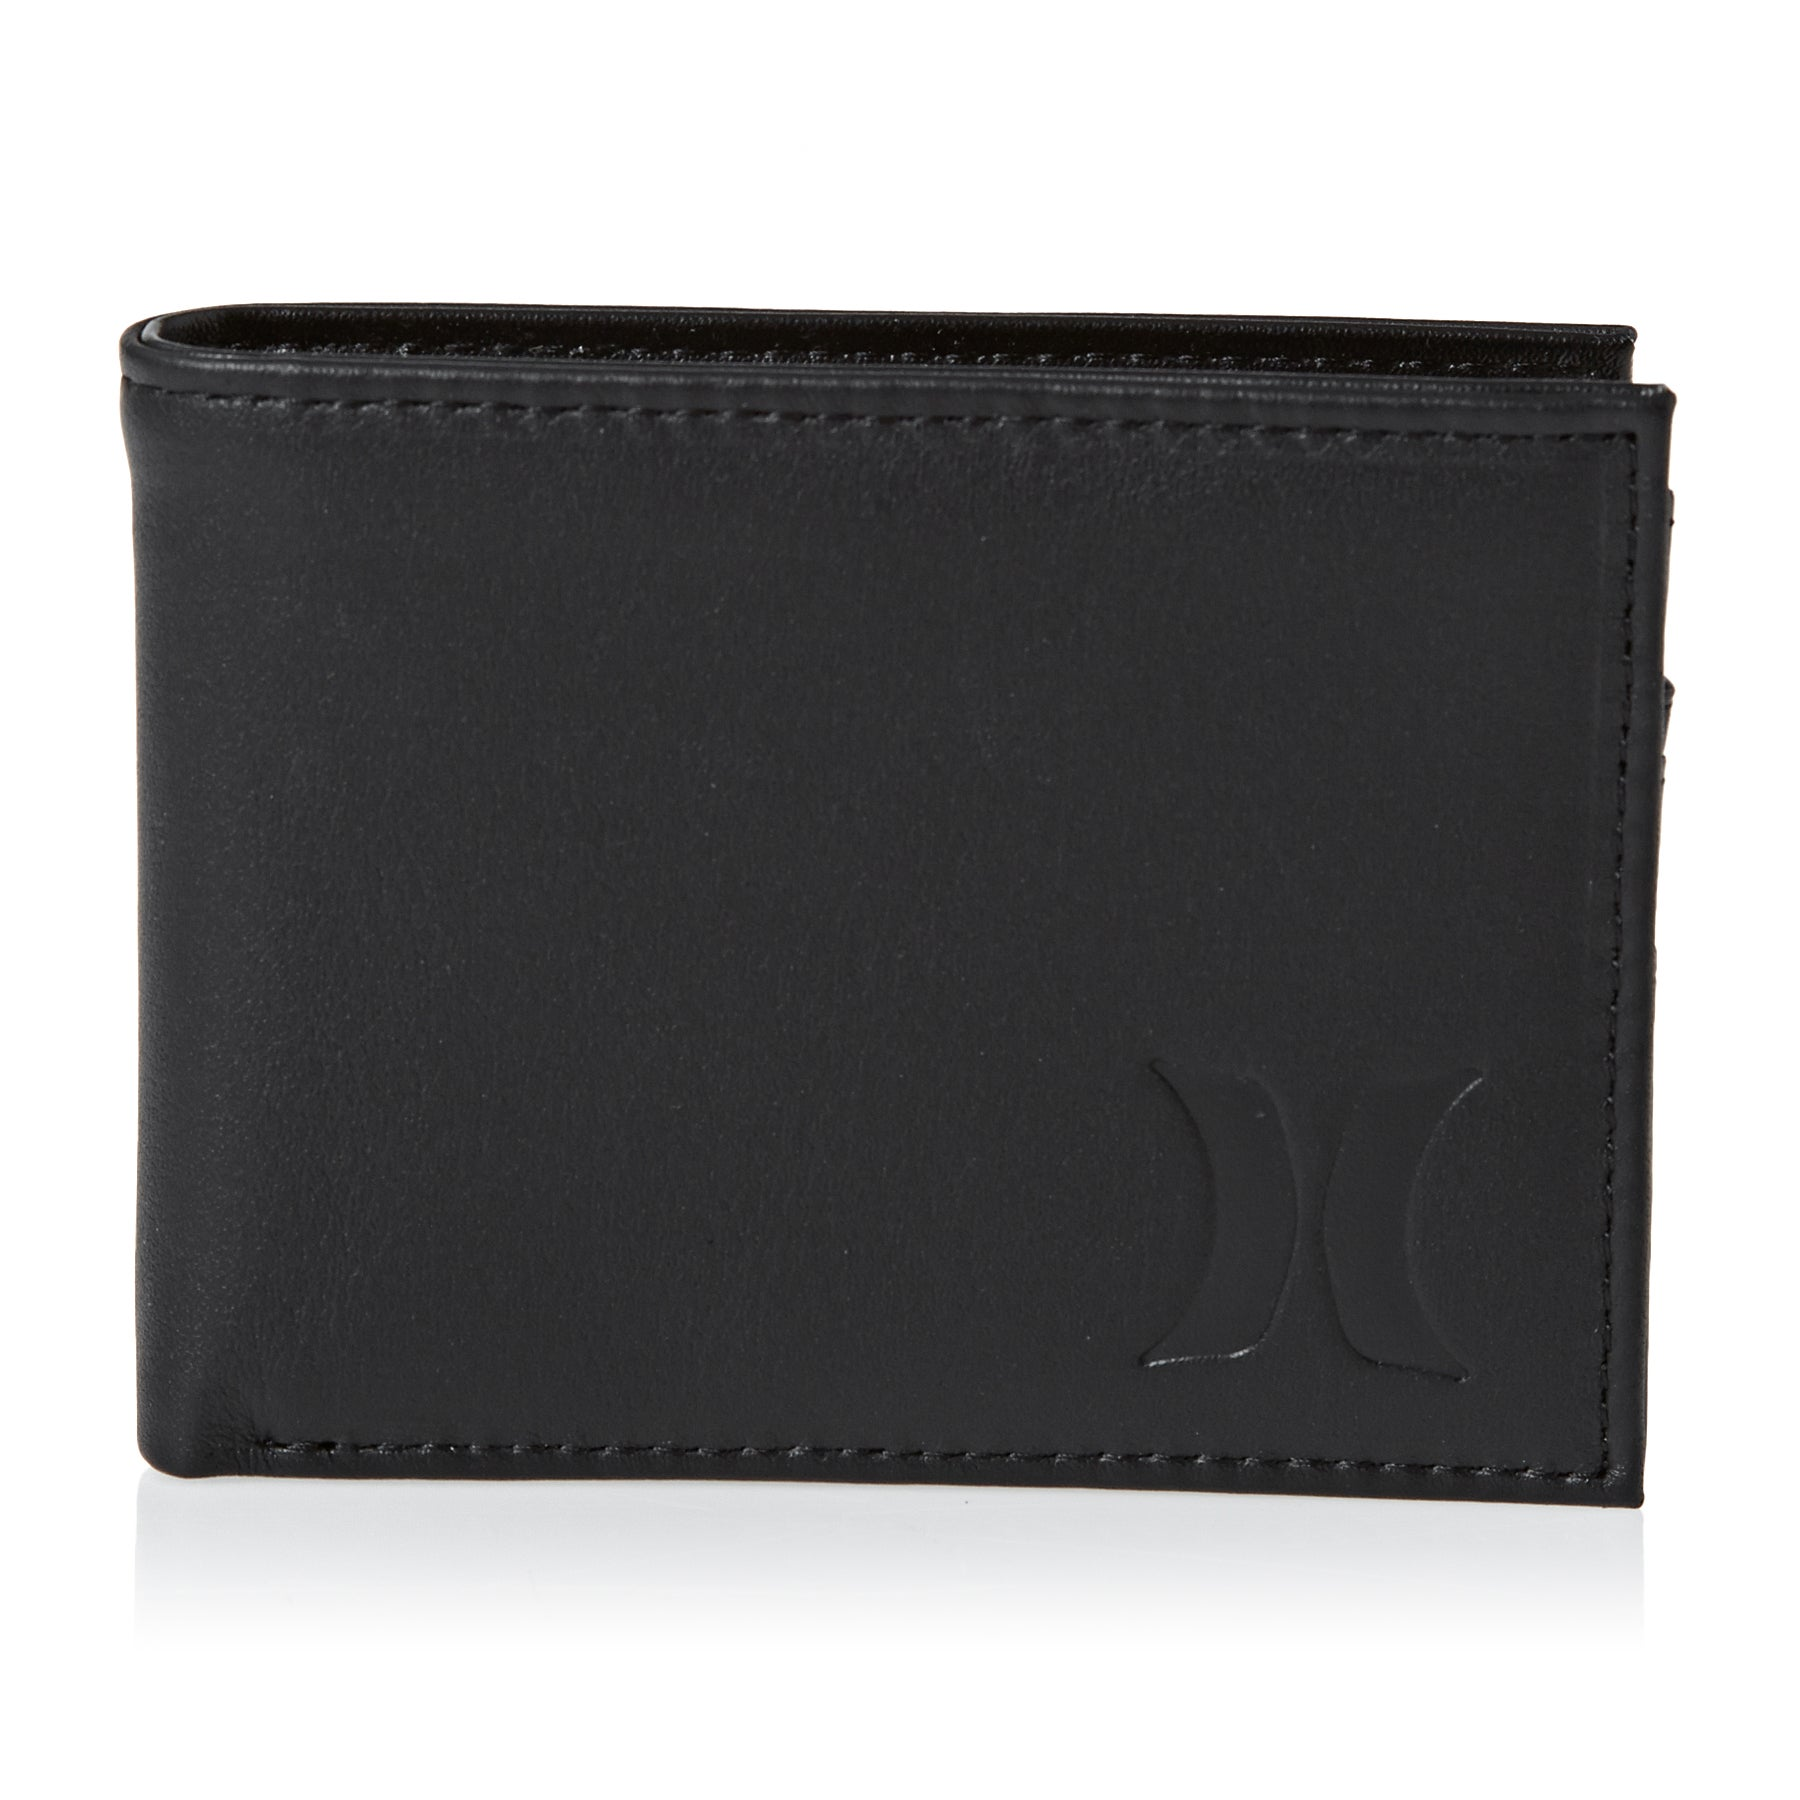 Hurley O&O Leather Wallet - Black